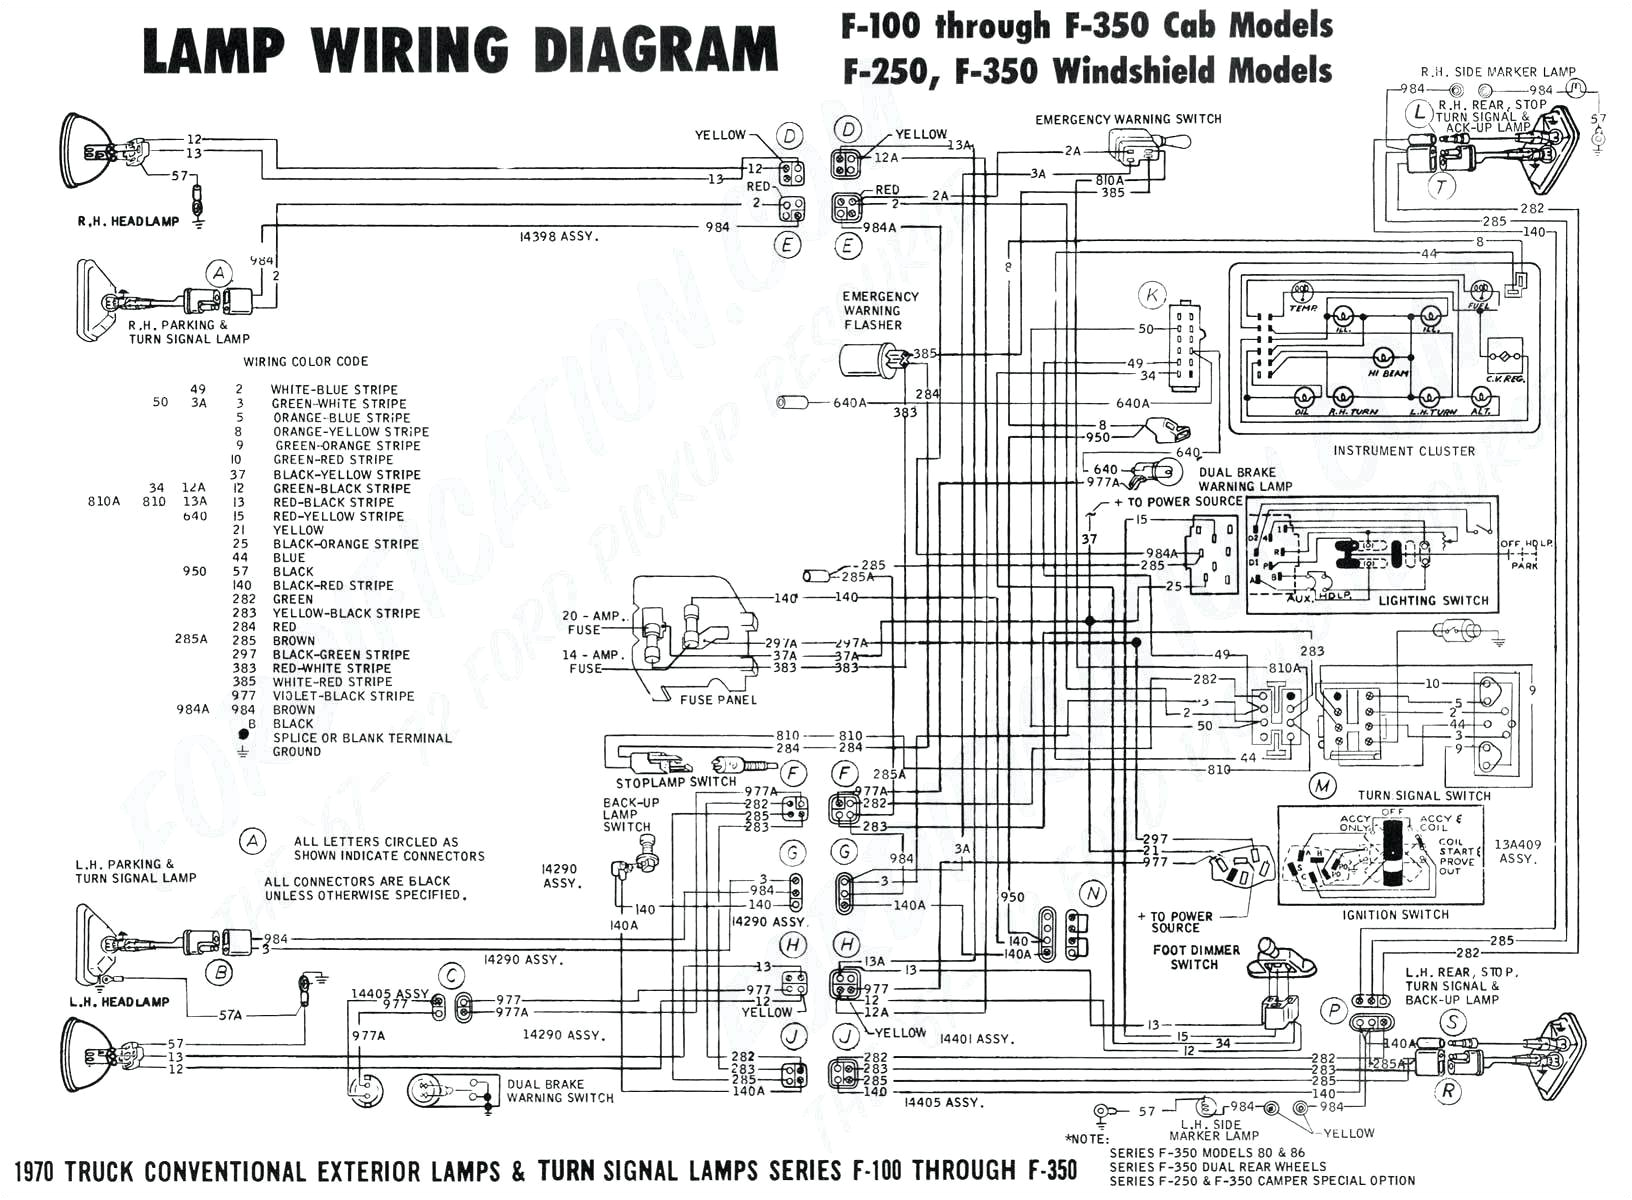 x 1996 ford ignition switch diagram wiring diagram files ignition switch wiring 1996 ford thunderbird free